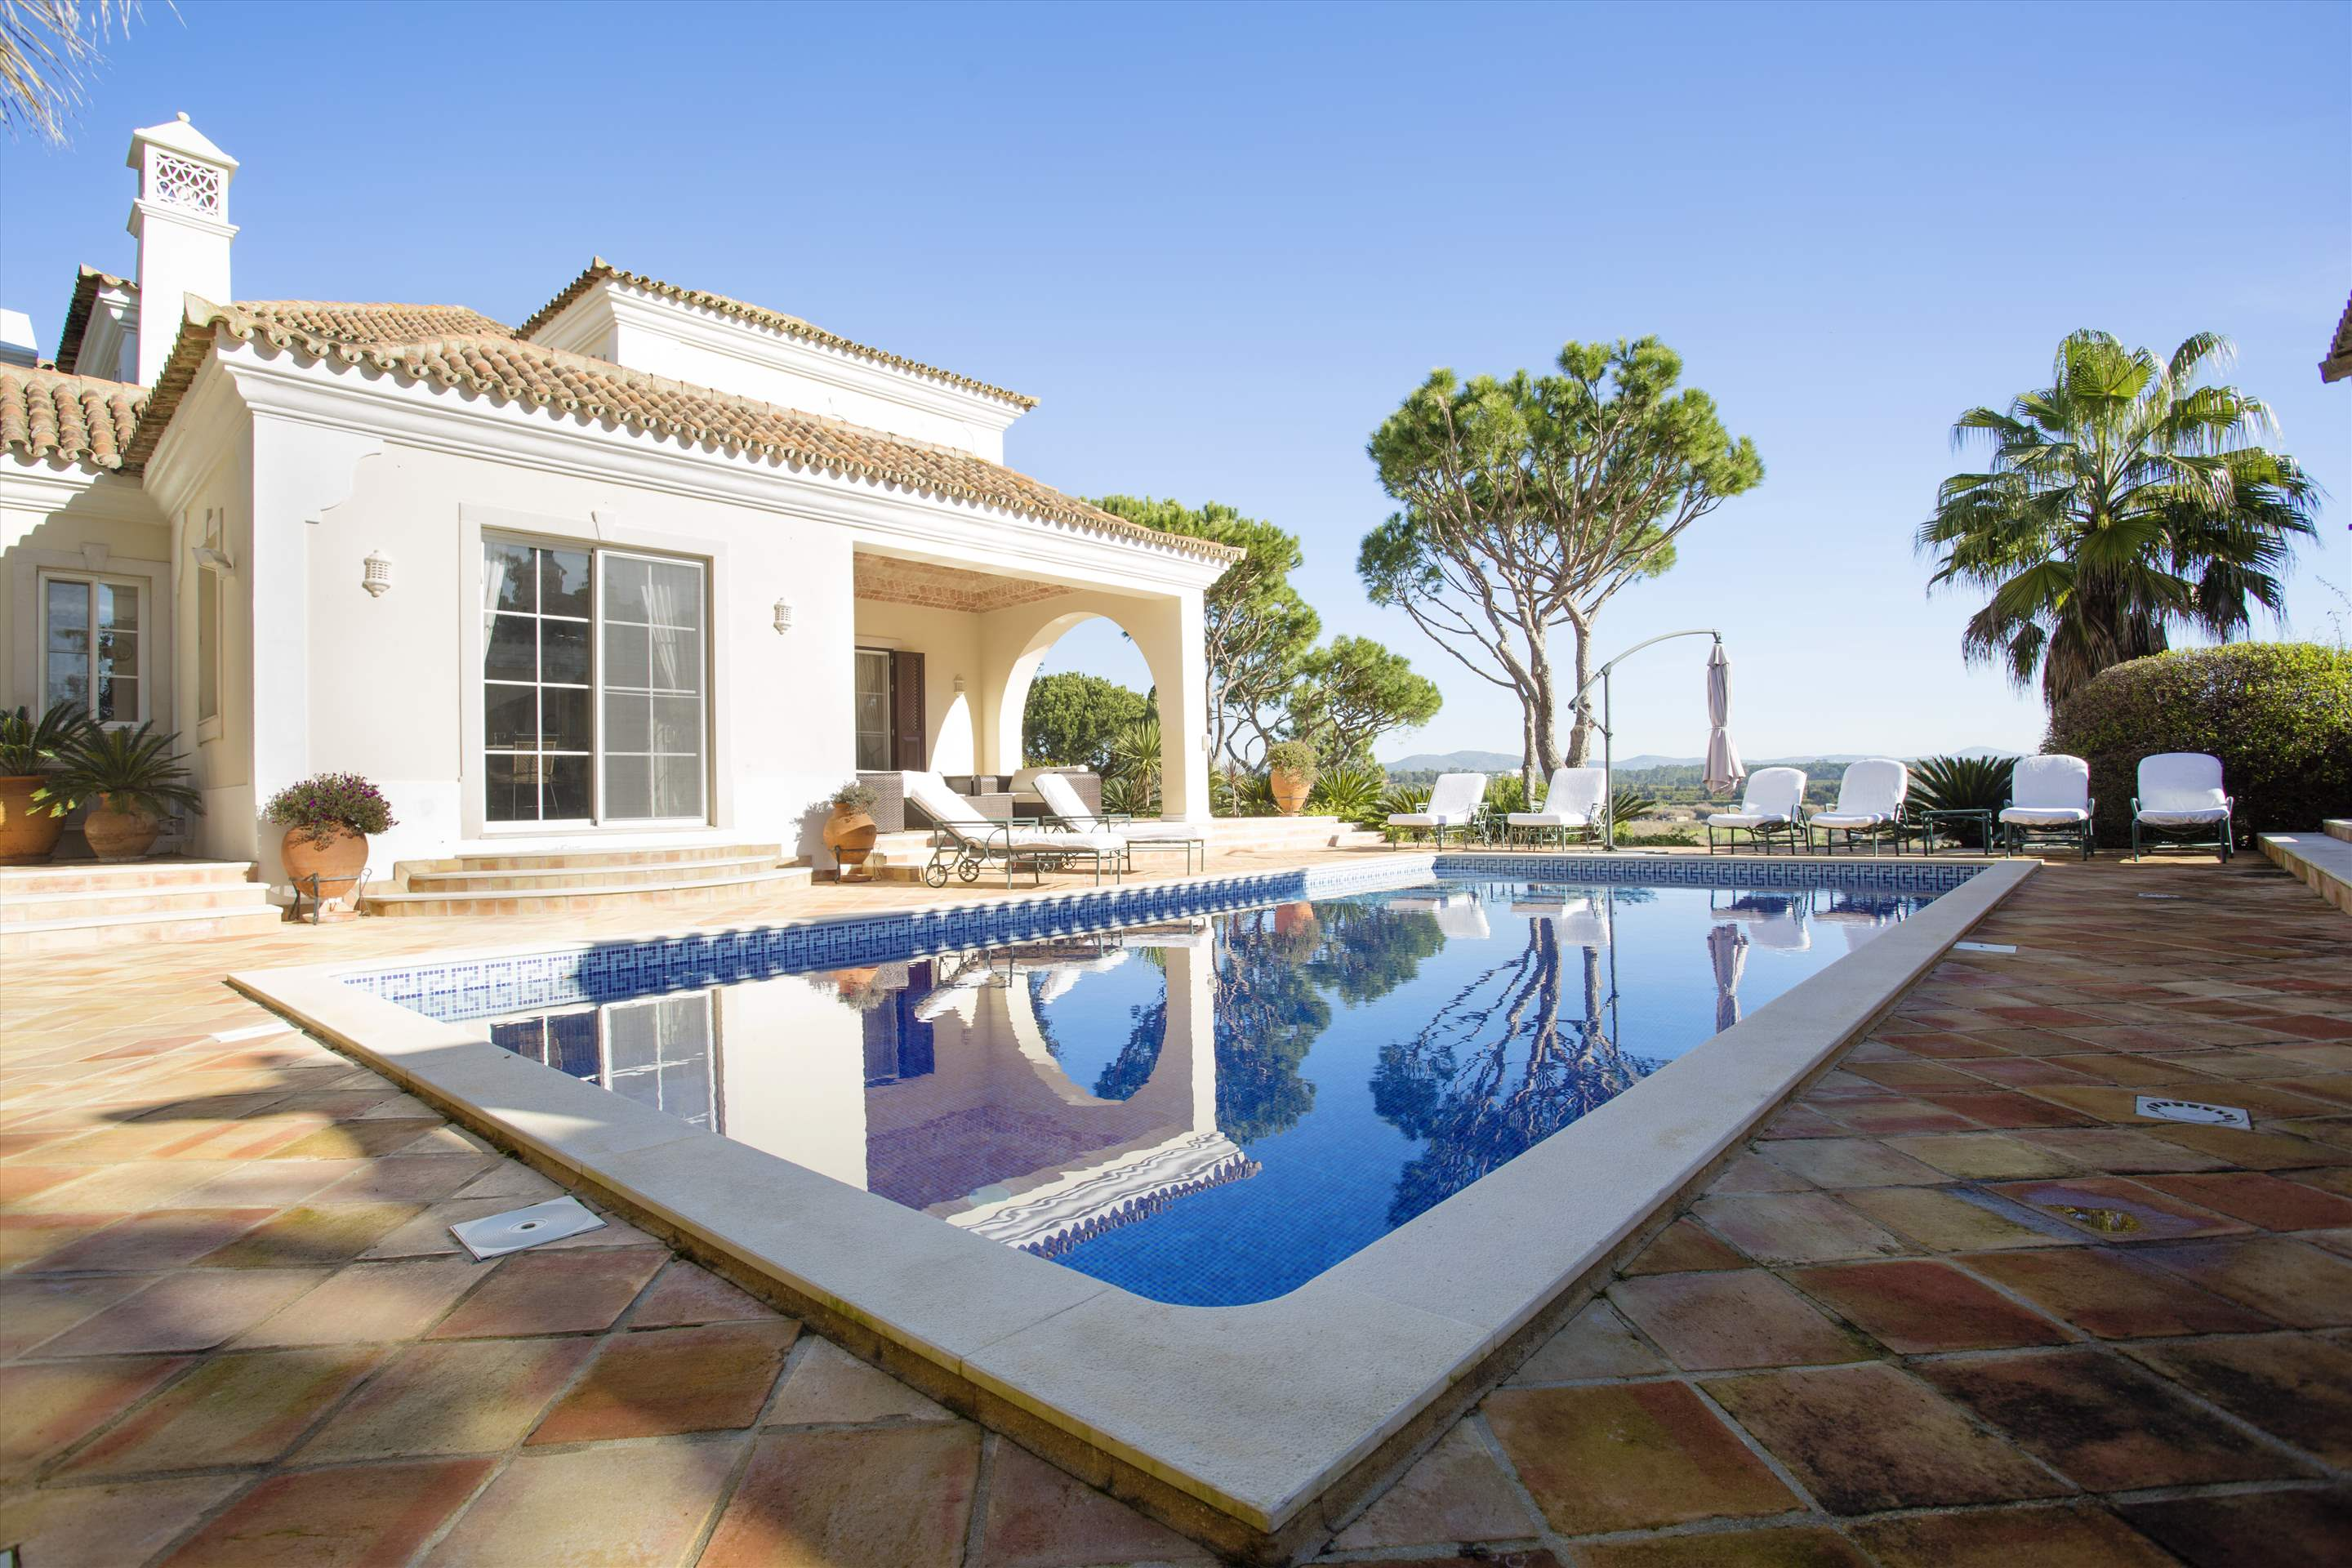 Villa Palmeiras Altas, 5 bedroom villa in Quinta do Lago, Algarve Photo #4